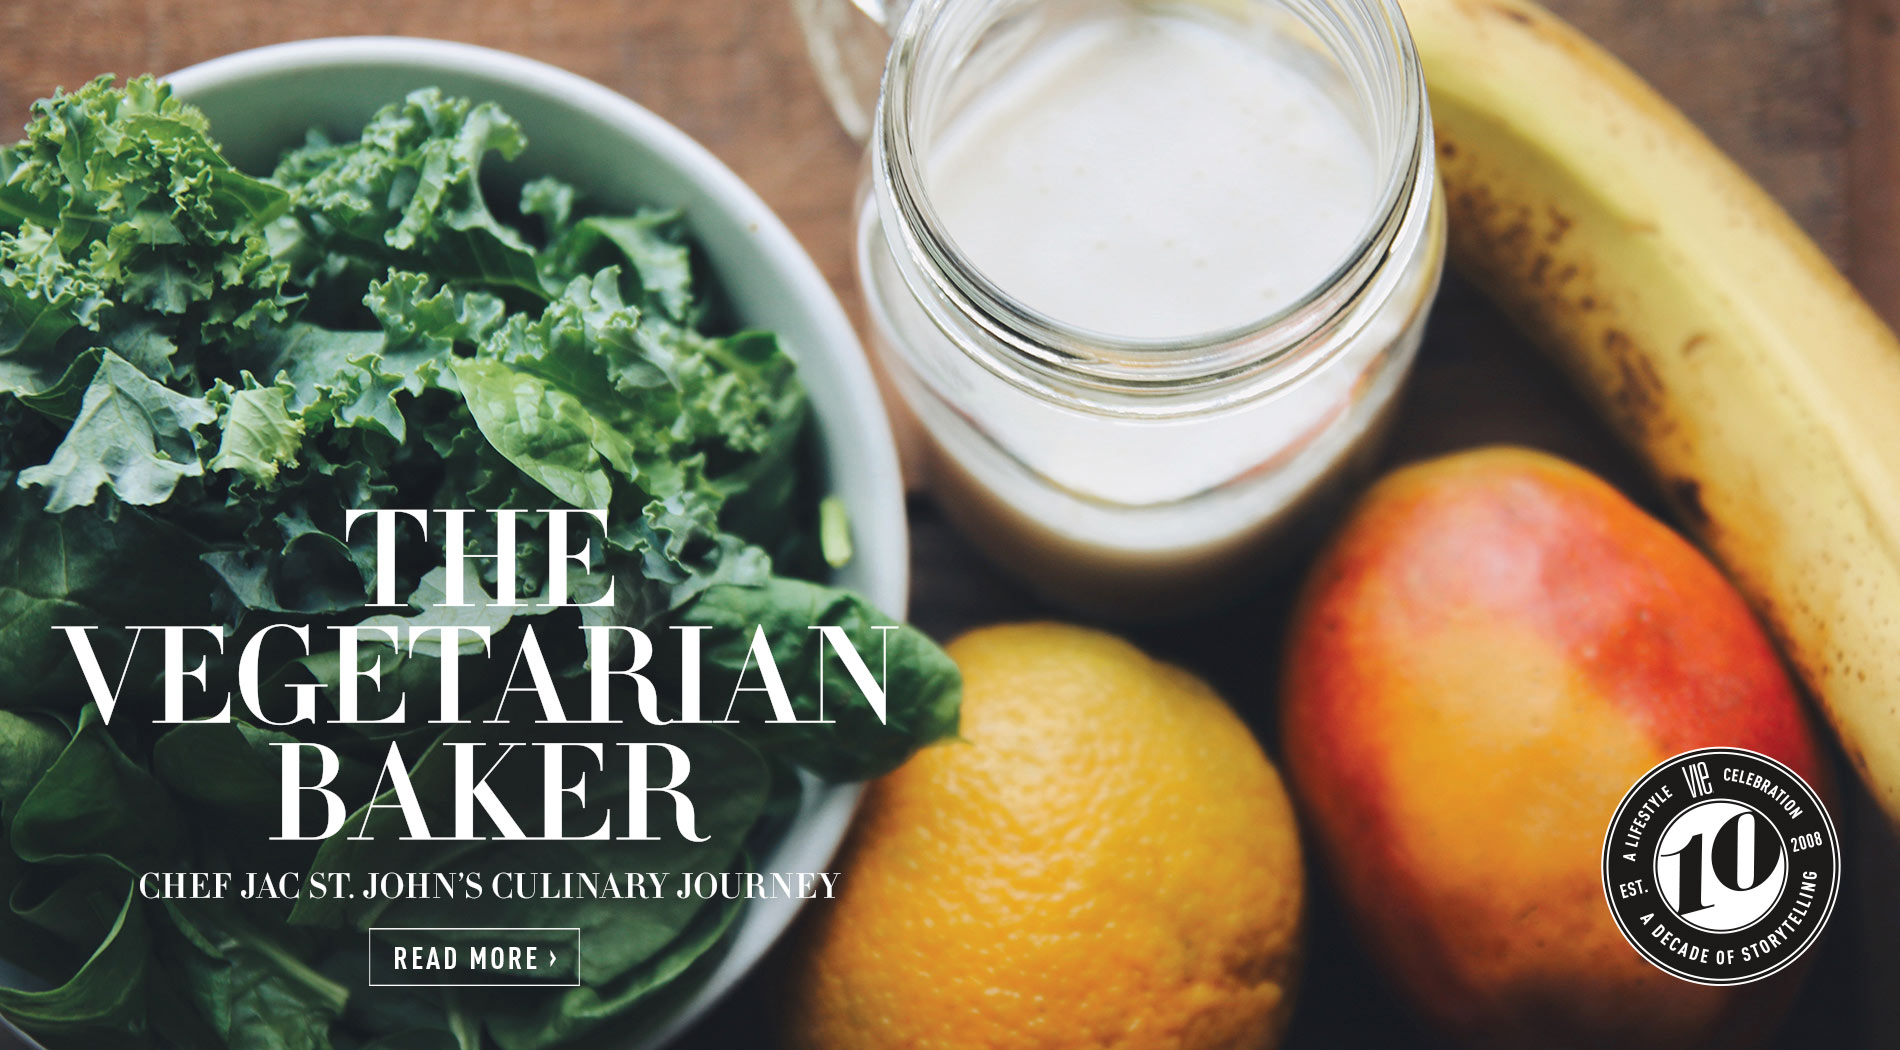 VIE Magazine - January 2018 Health & Beauty Issue - The Vegetarian Baker